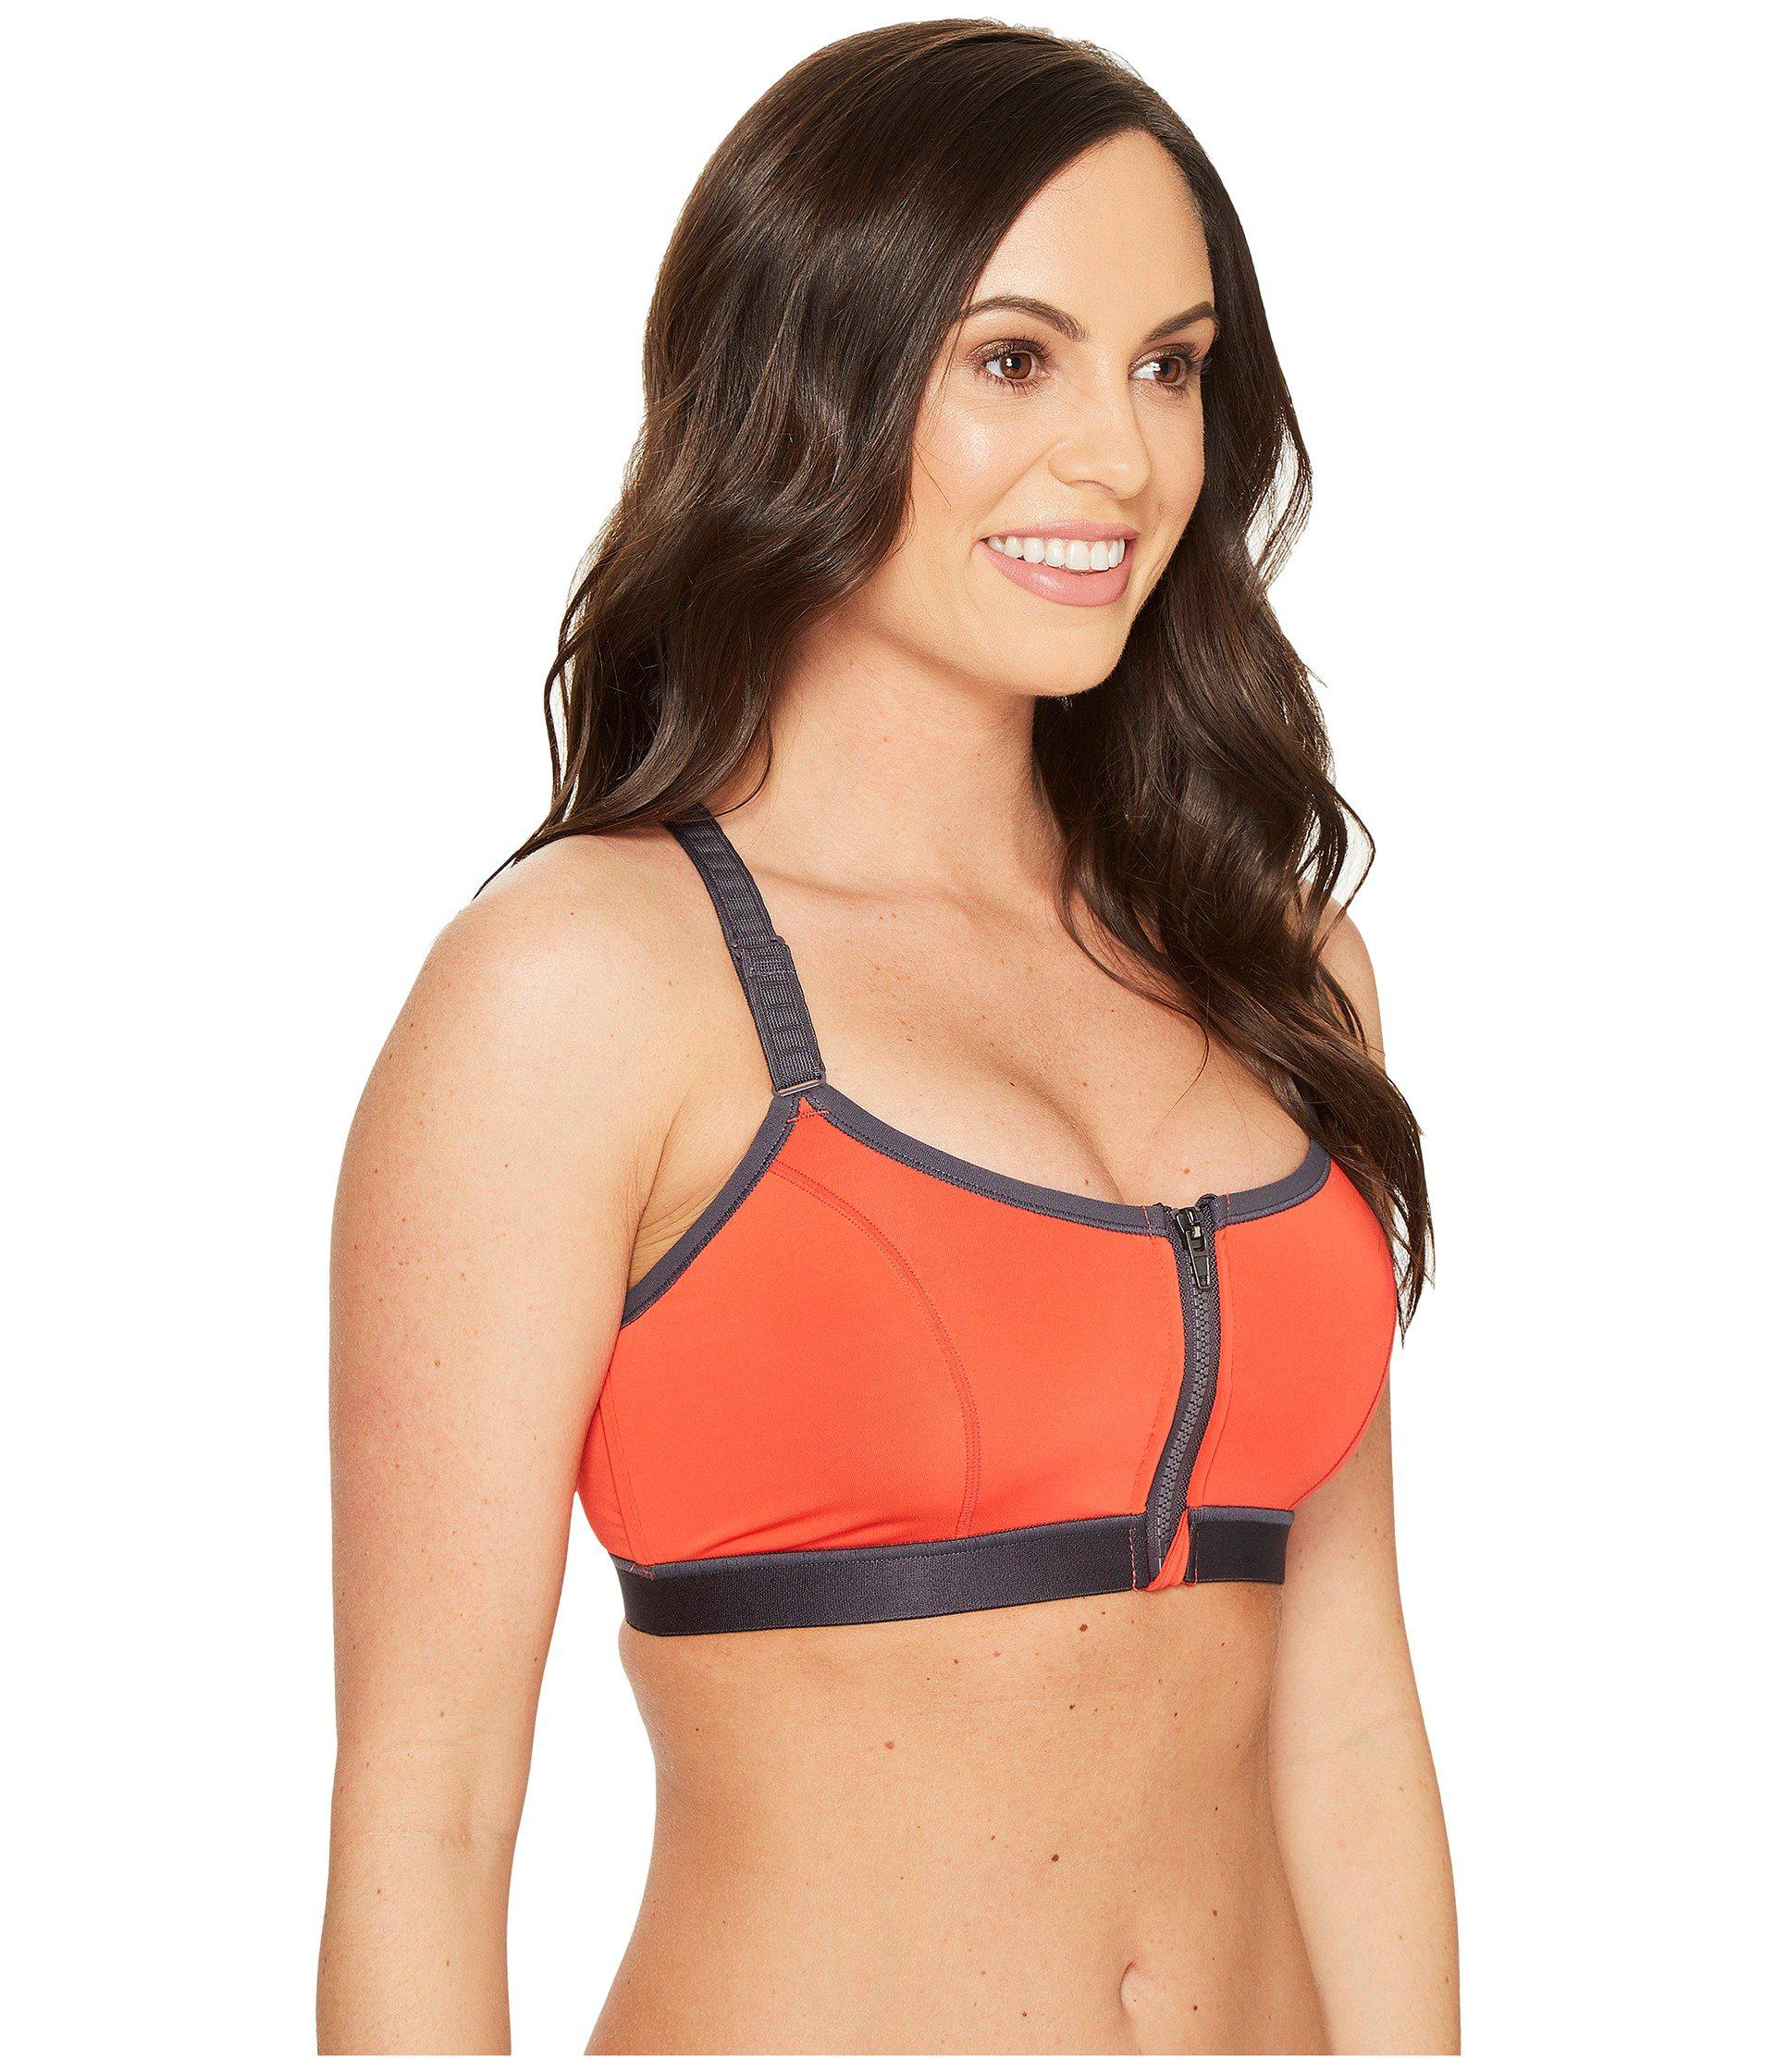 437e62fb17449 Natori - Red Yogi Zip-front Wireless High-impact Sports Bra 736050 - Lyst.  View fullscreen